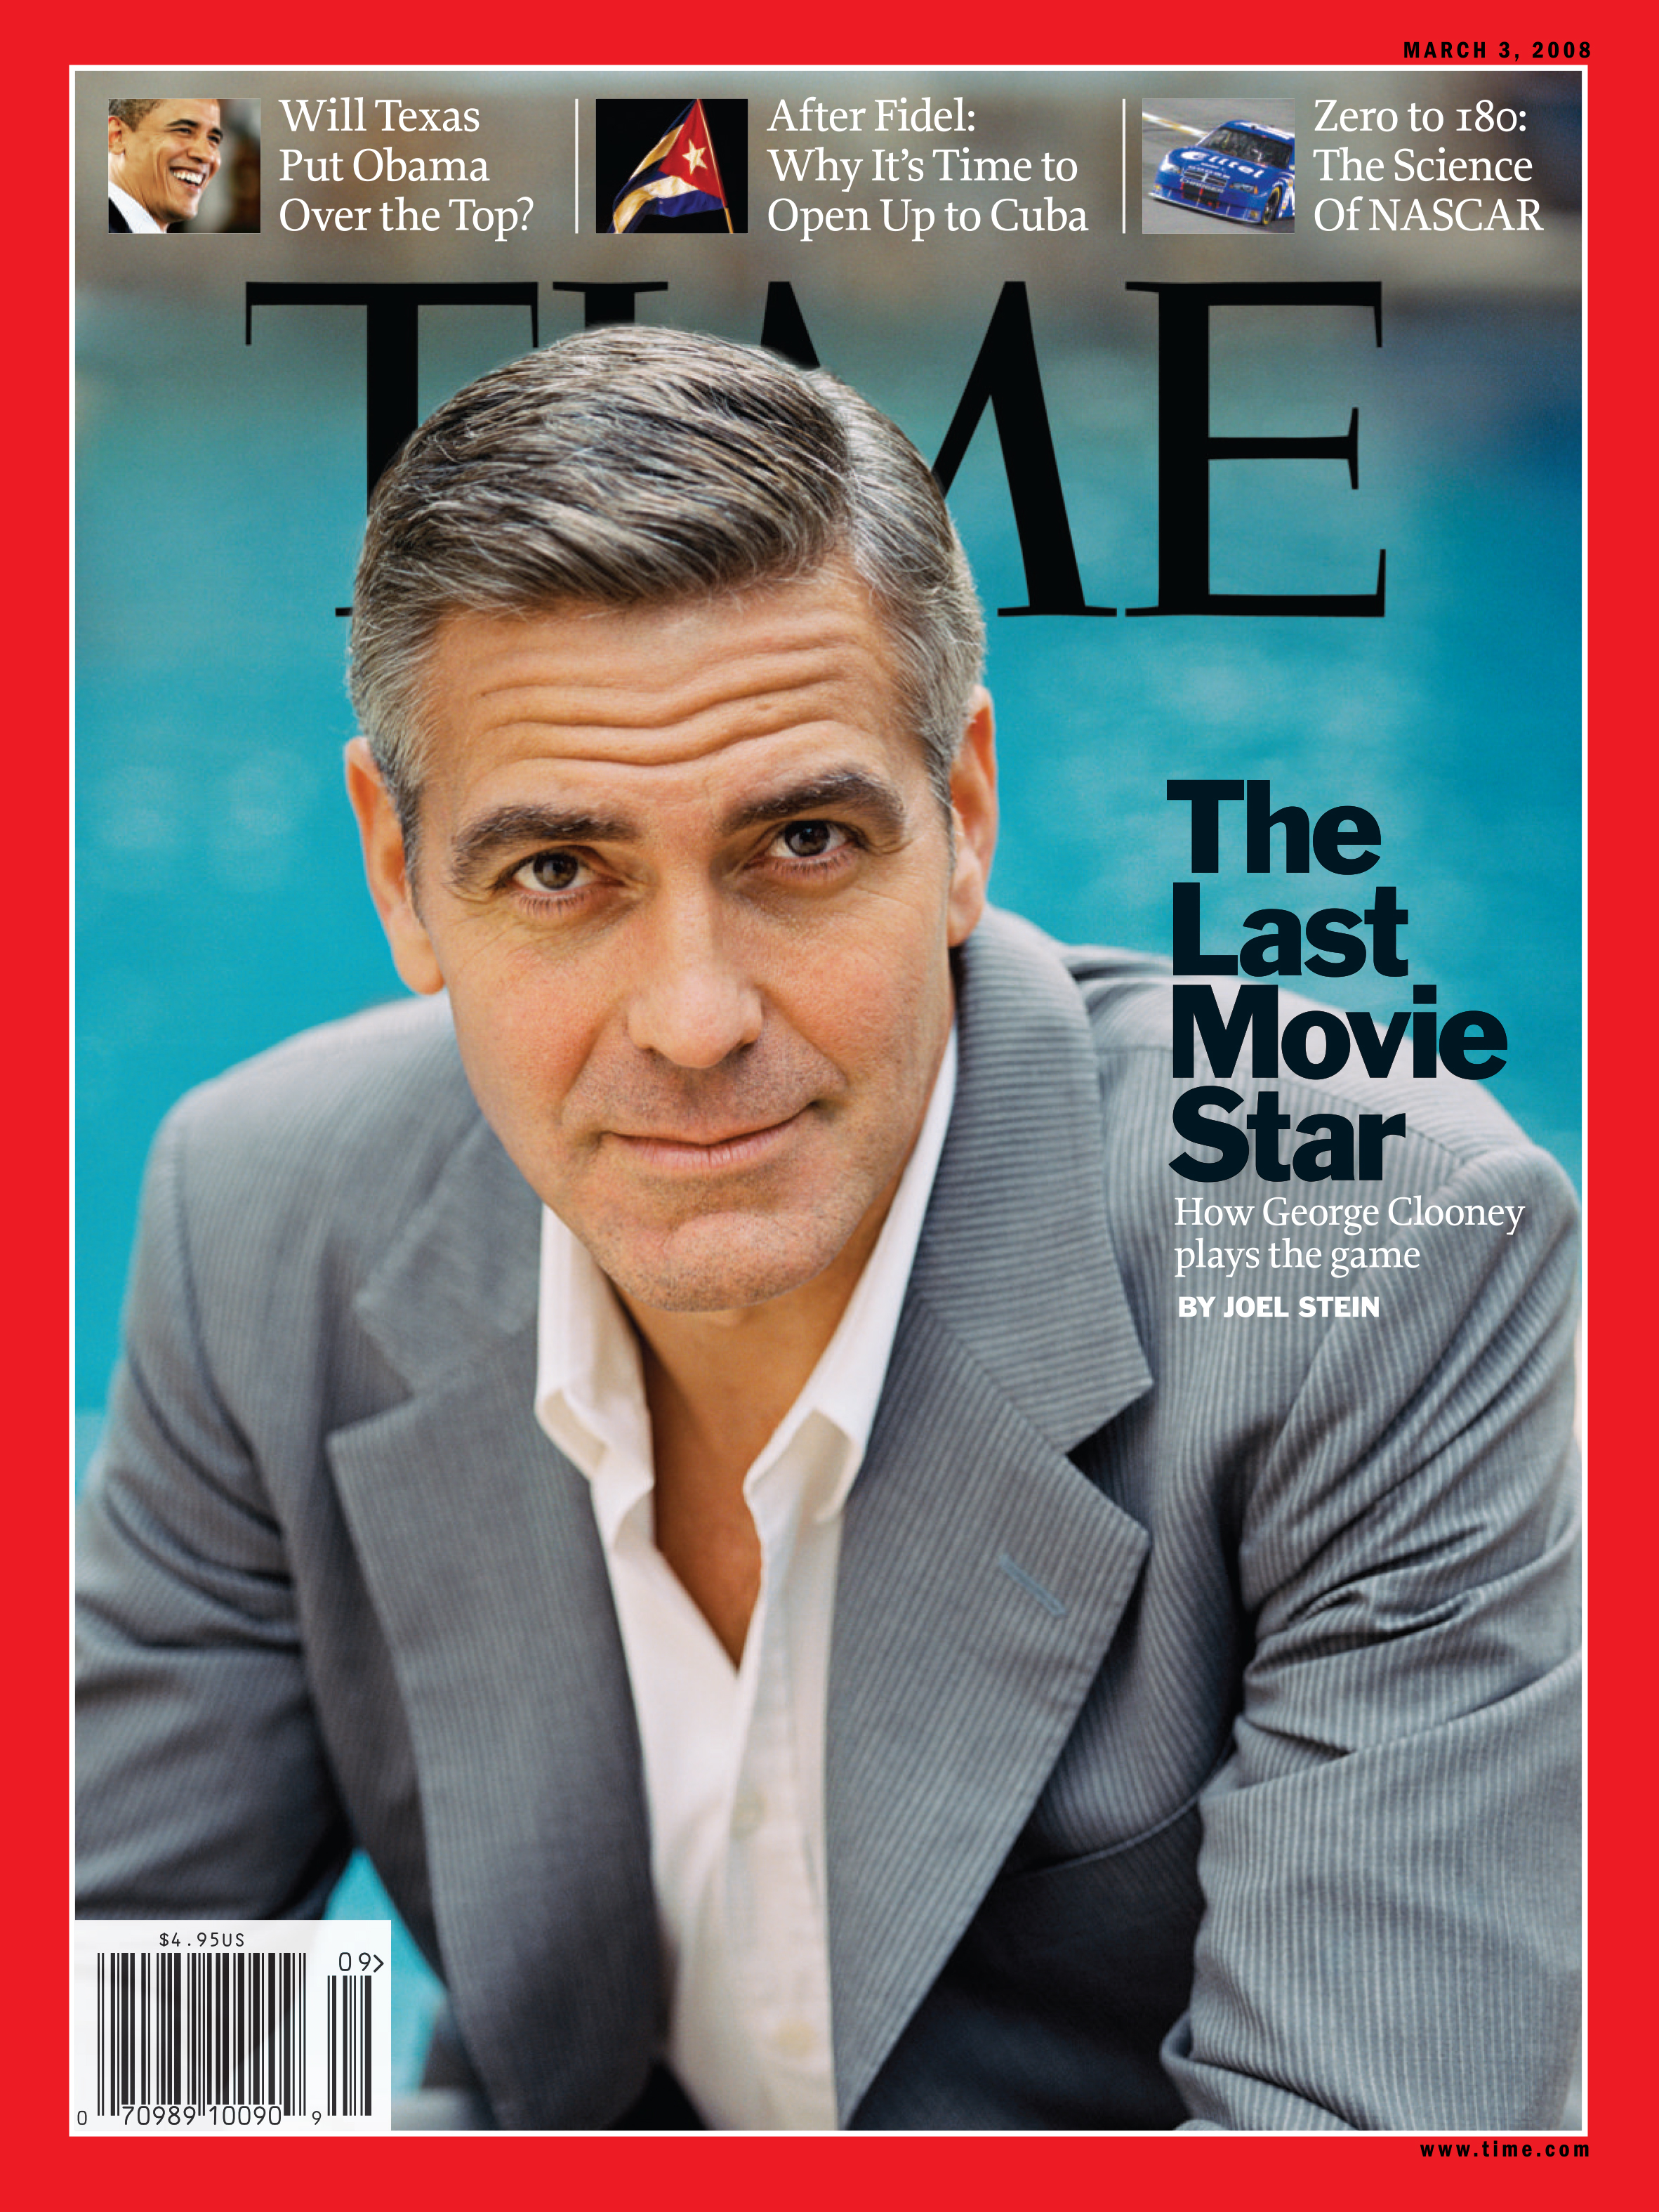 Clooney was on the cover of TIME Magazine in 2008.